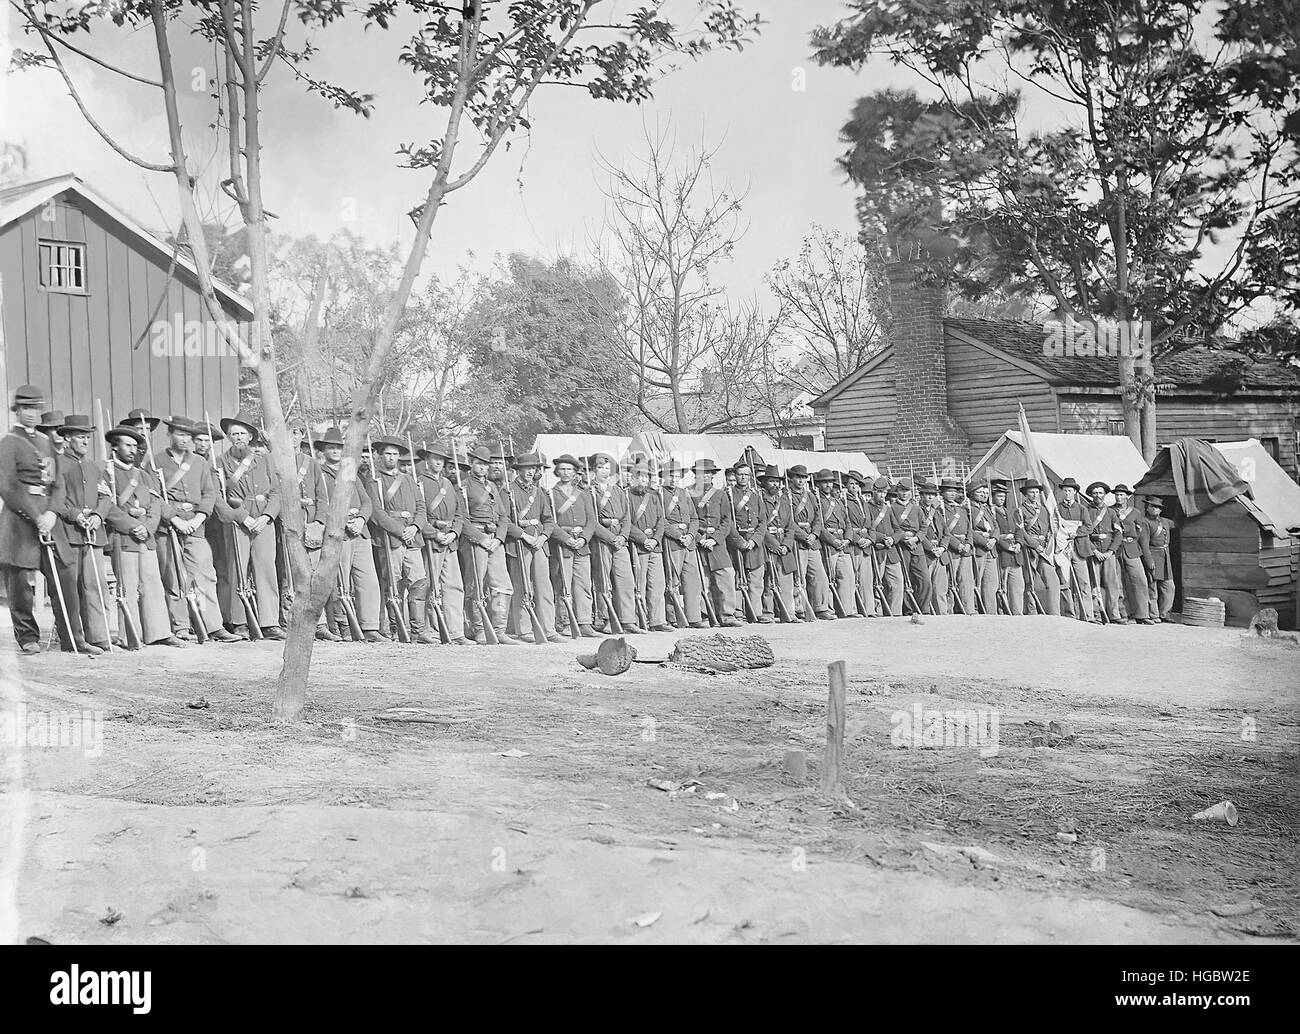 21st Michigan Infantry during the American Civil War. - Stock Image